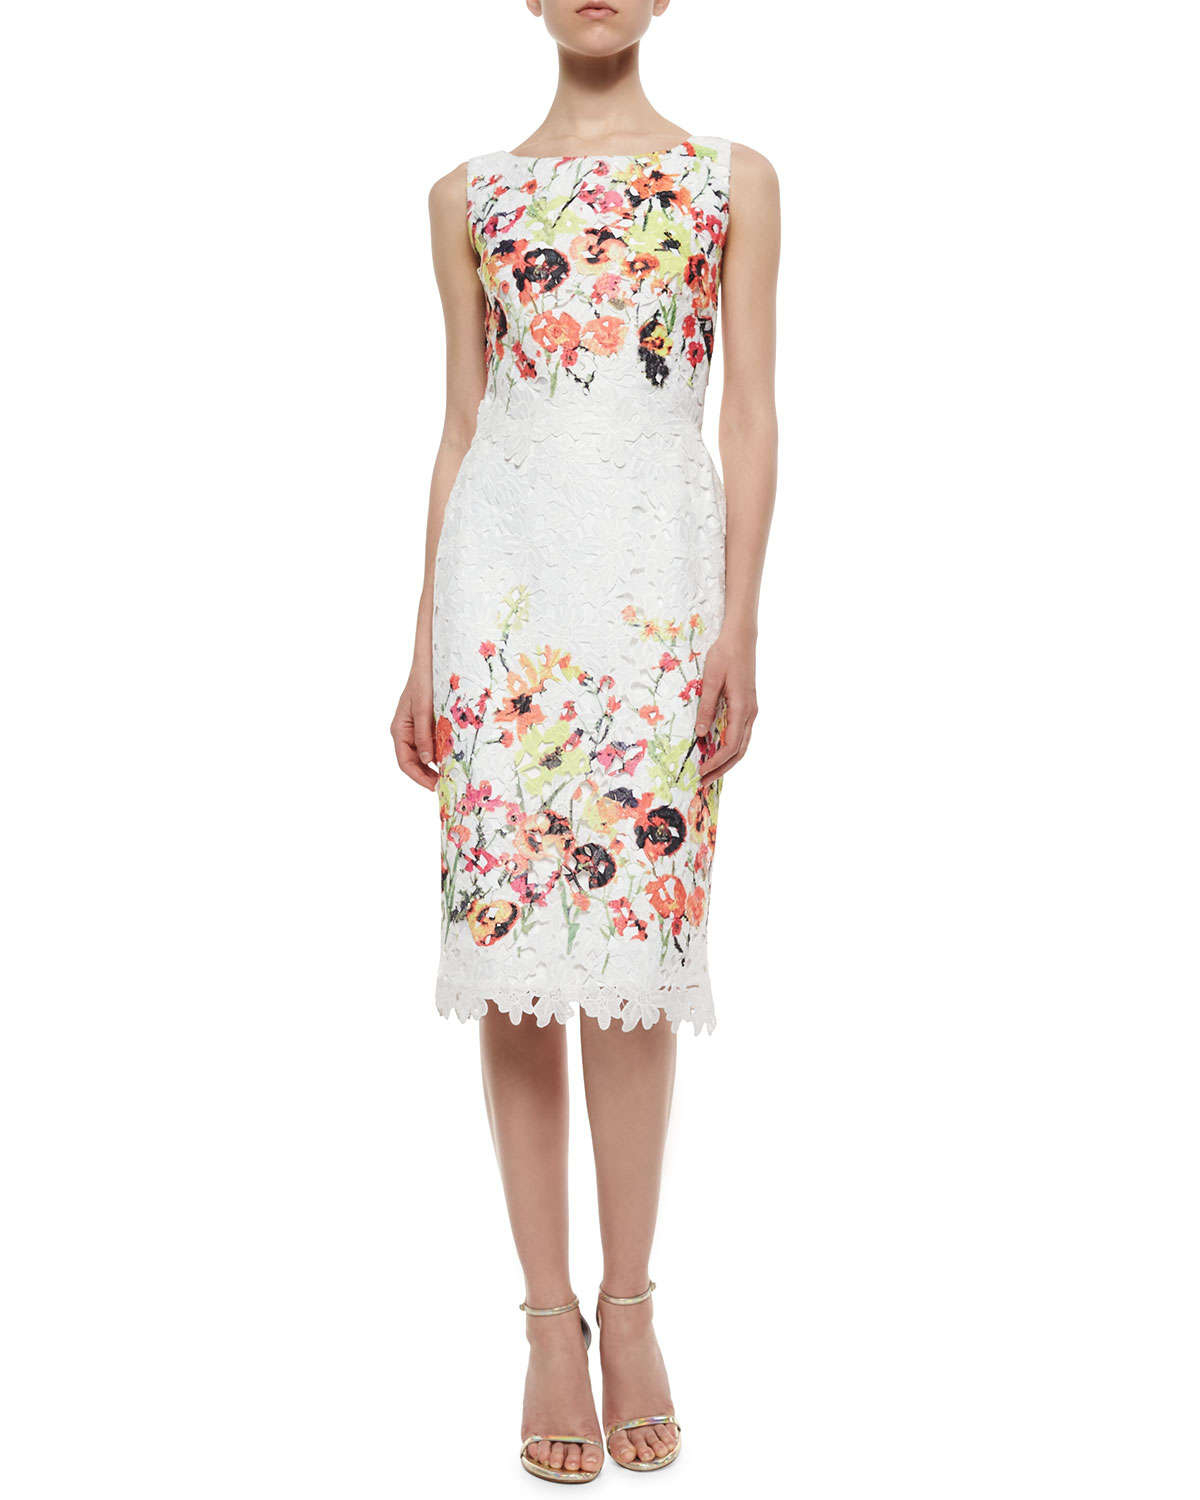 Lyst - Badgley Mischka Sleeveless Floral-Embroidered Lace Dress